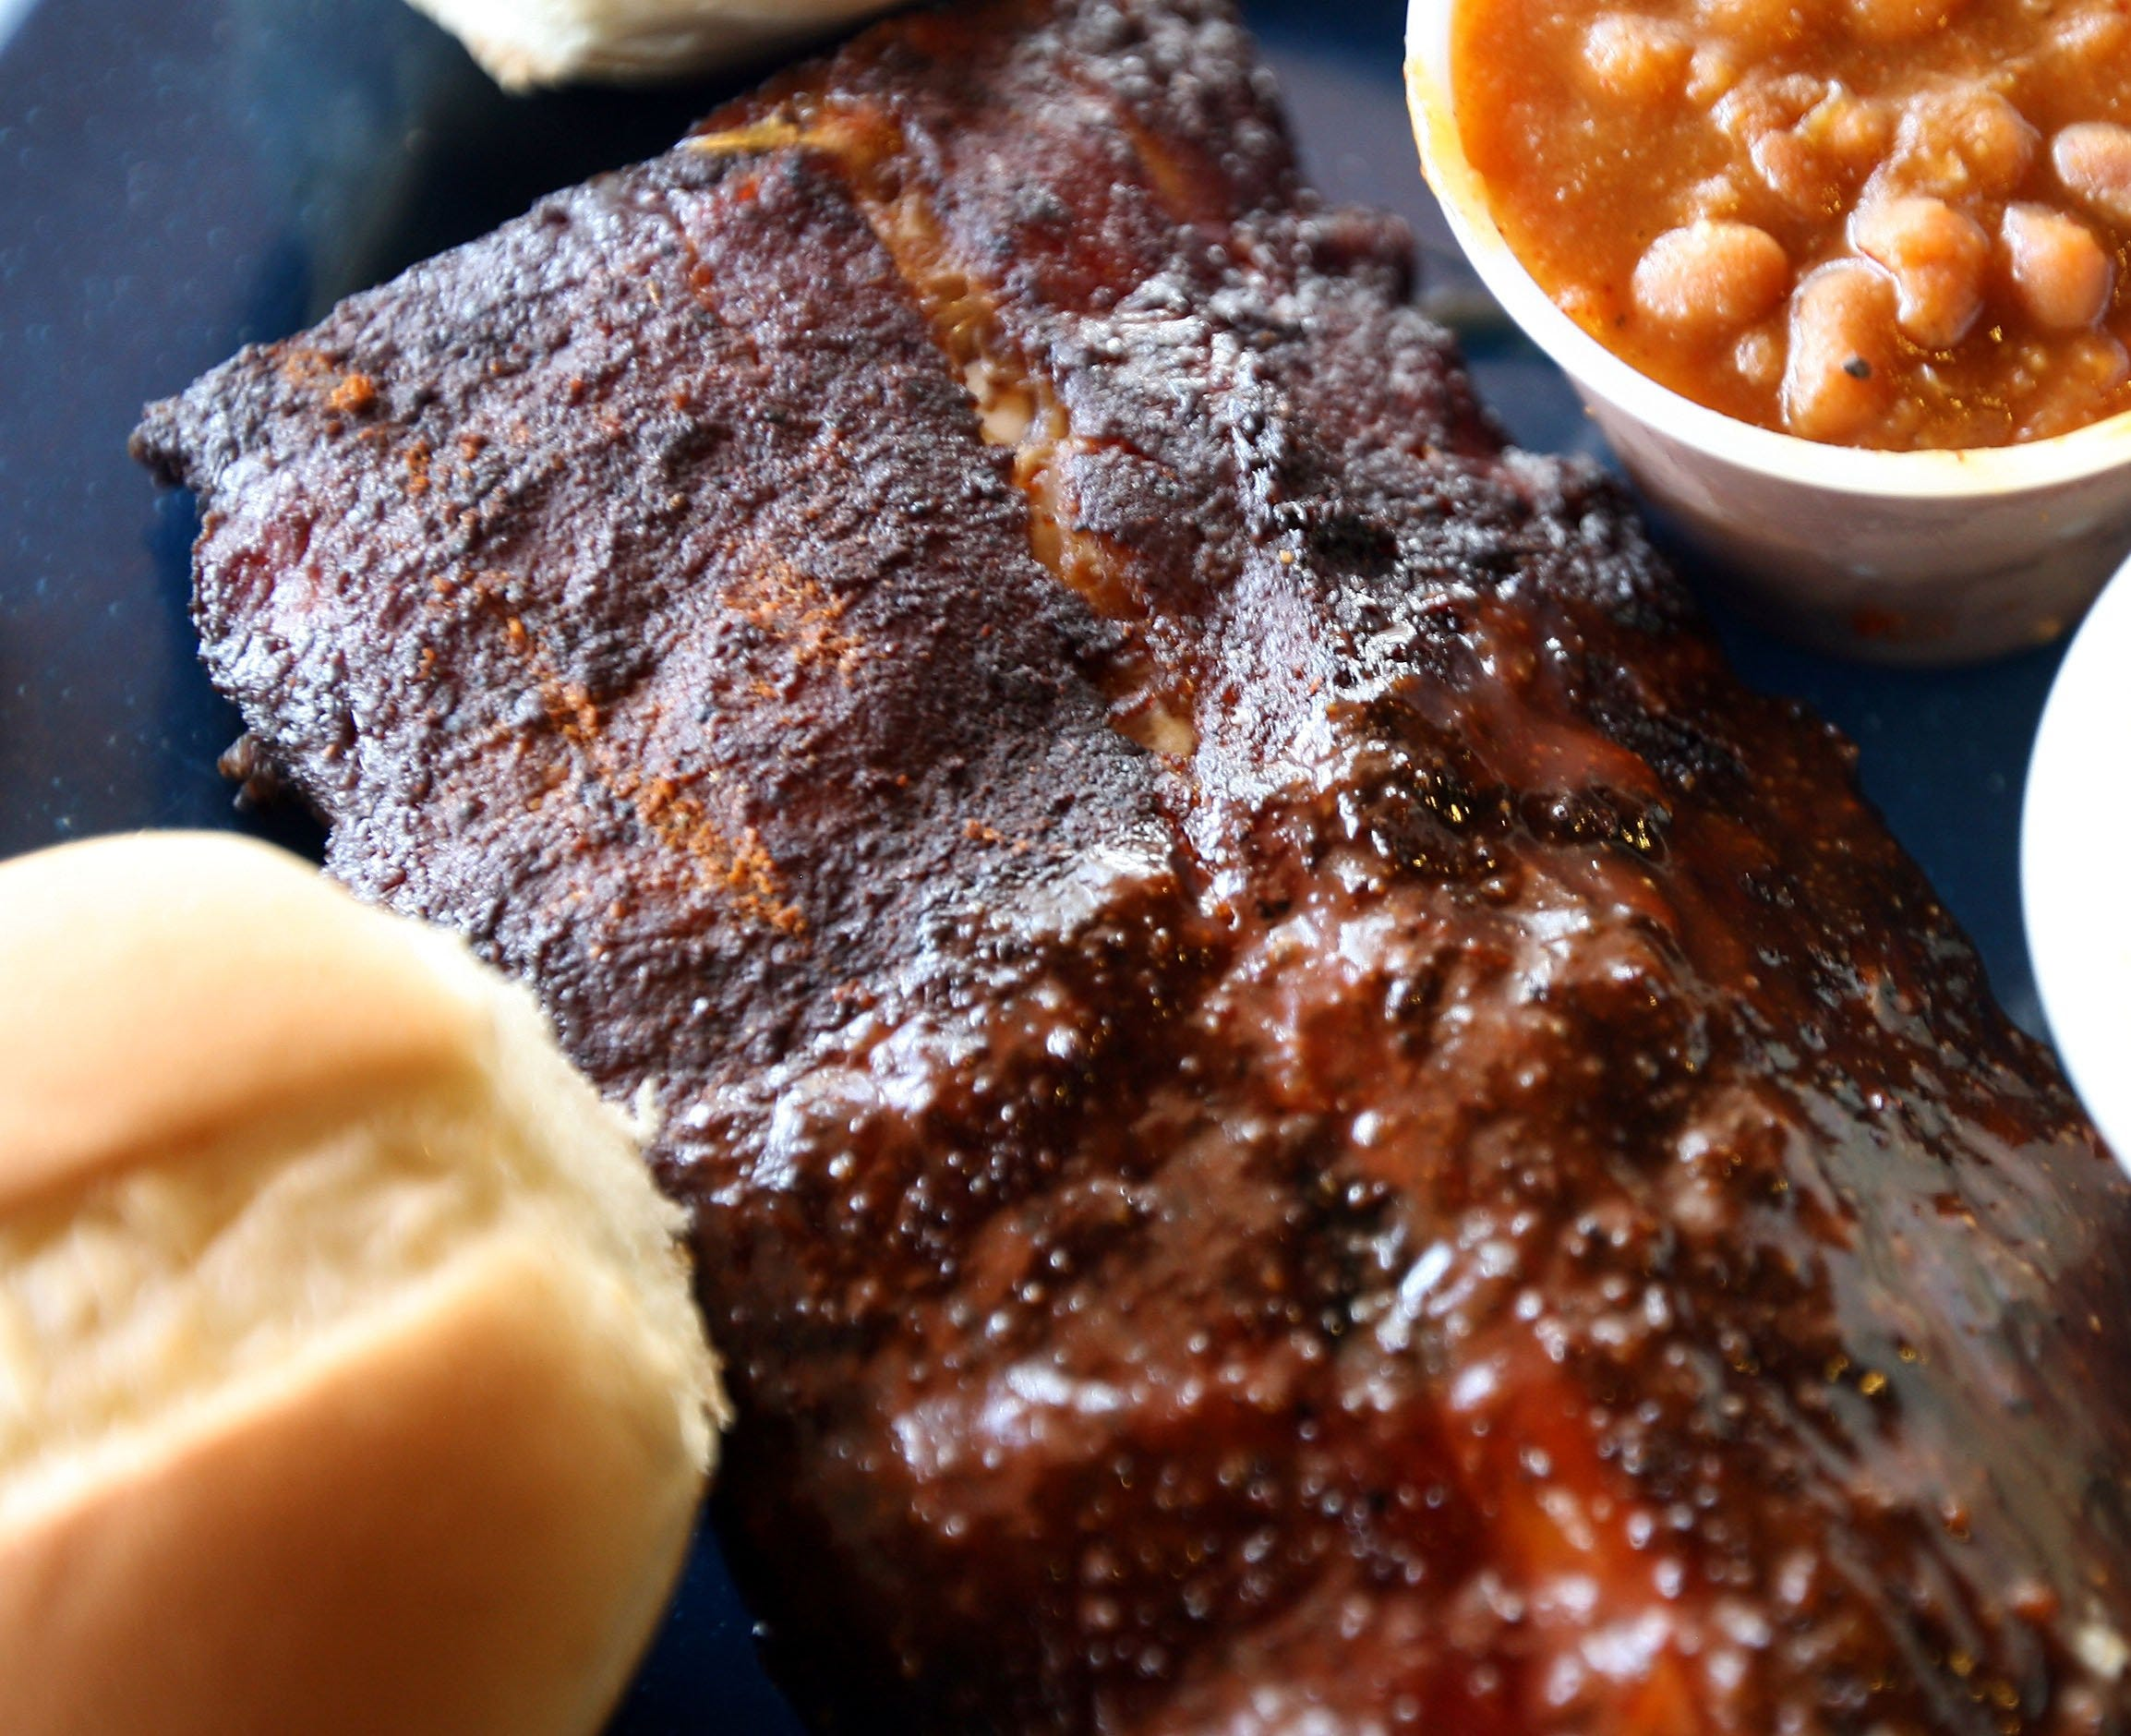 Queuing for 'cue: Most recommended barbecue restaurants in Memphis | The Commercial Appeal